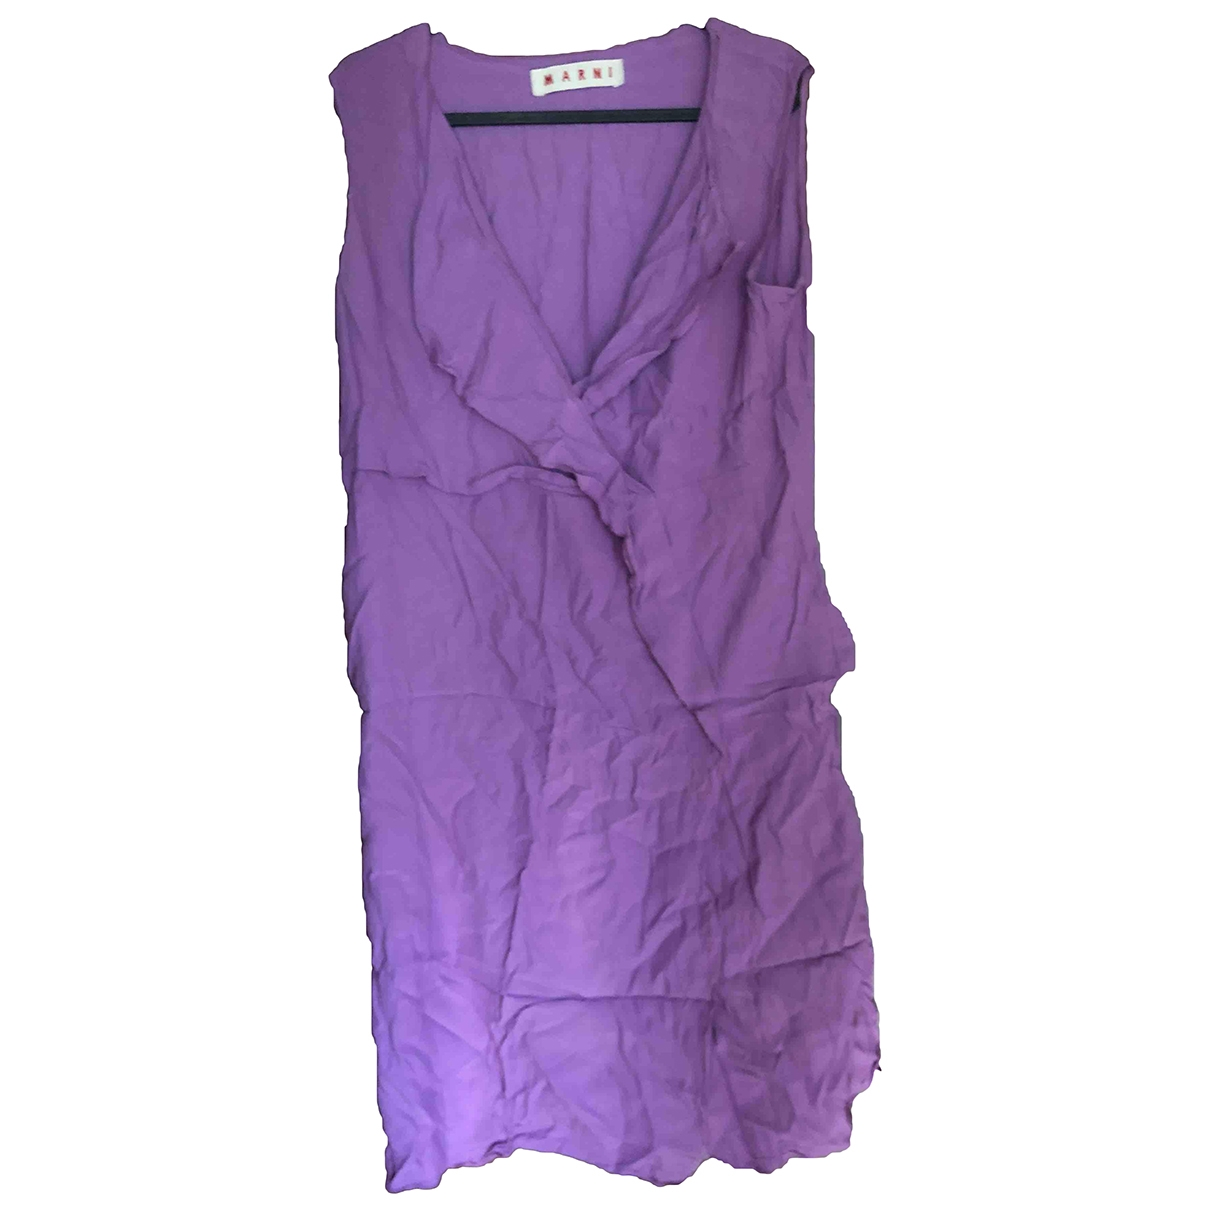 Marni \N Purple dress for Women 44 IT